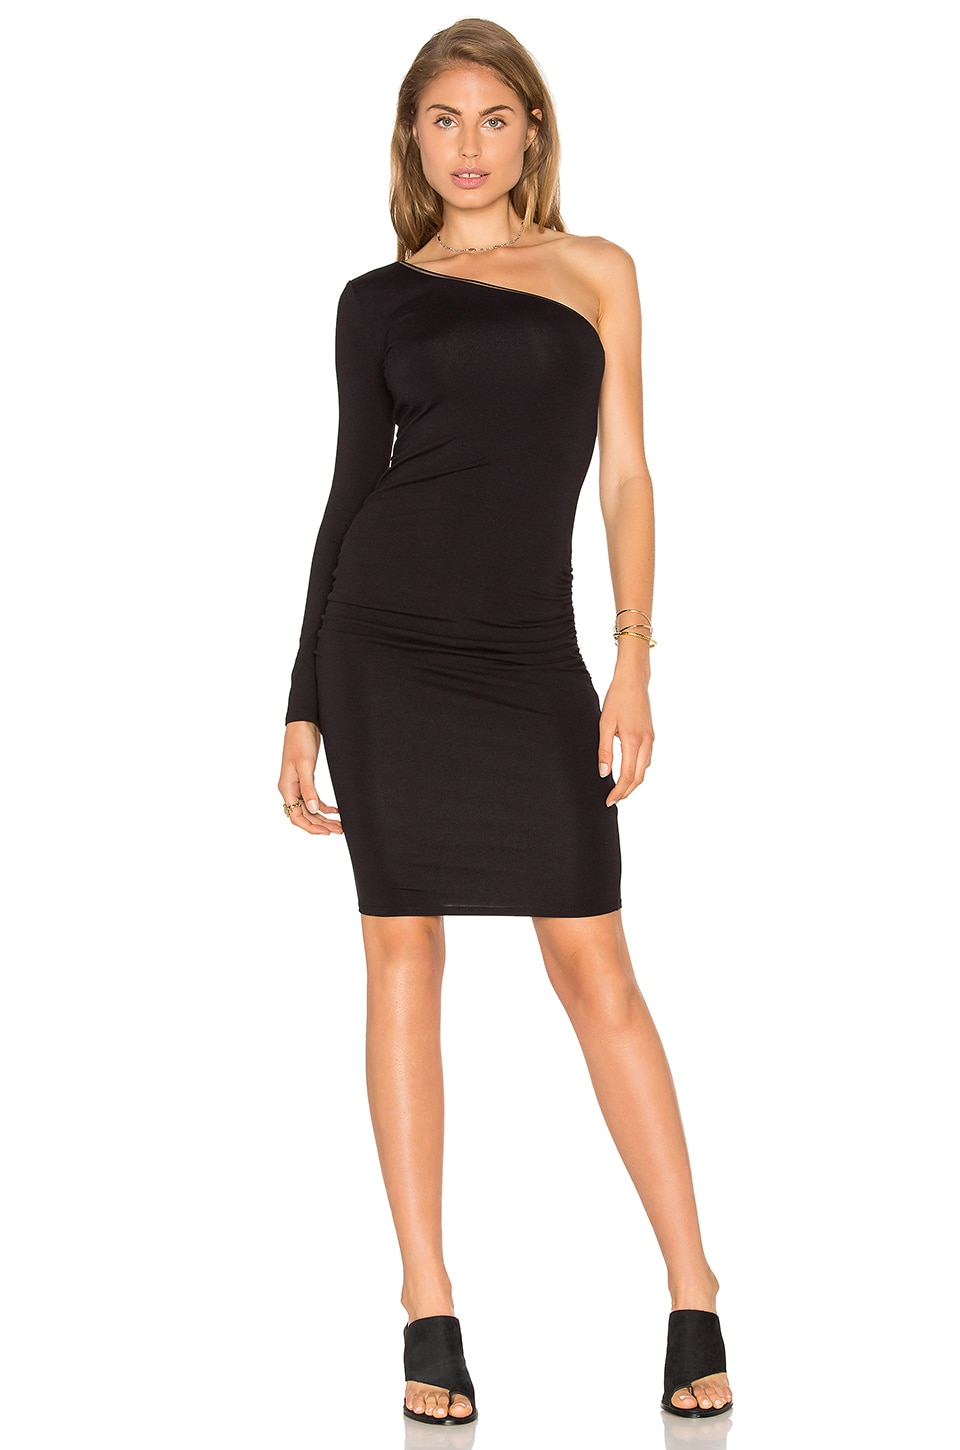 twenty One Shoulder Bodycon Dress in Black